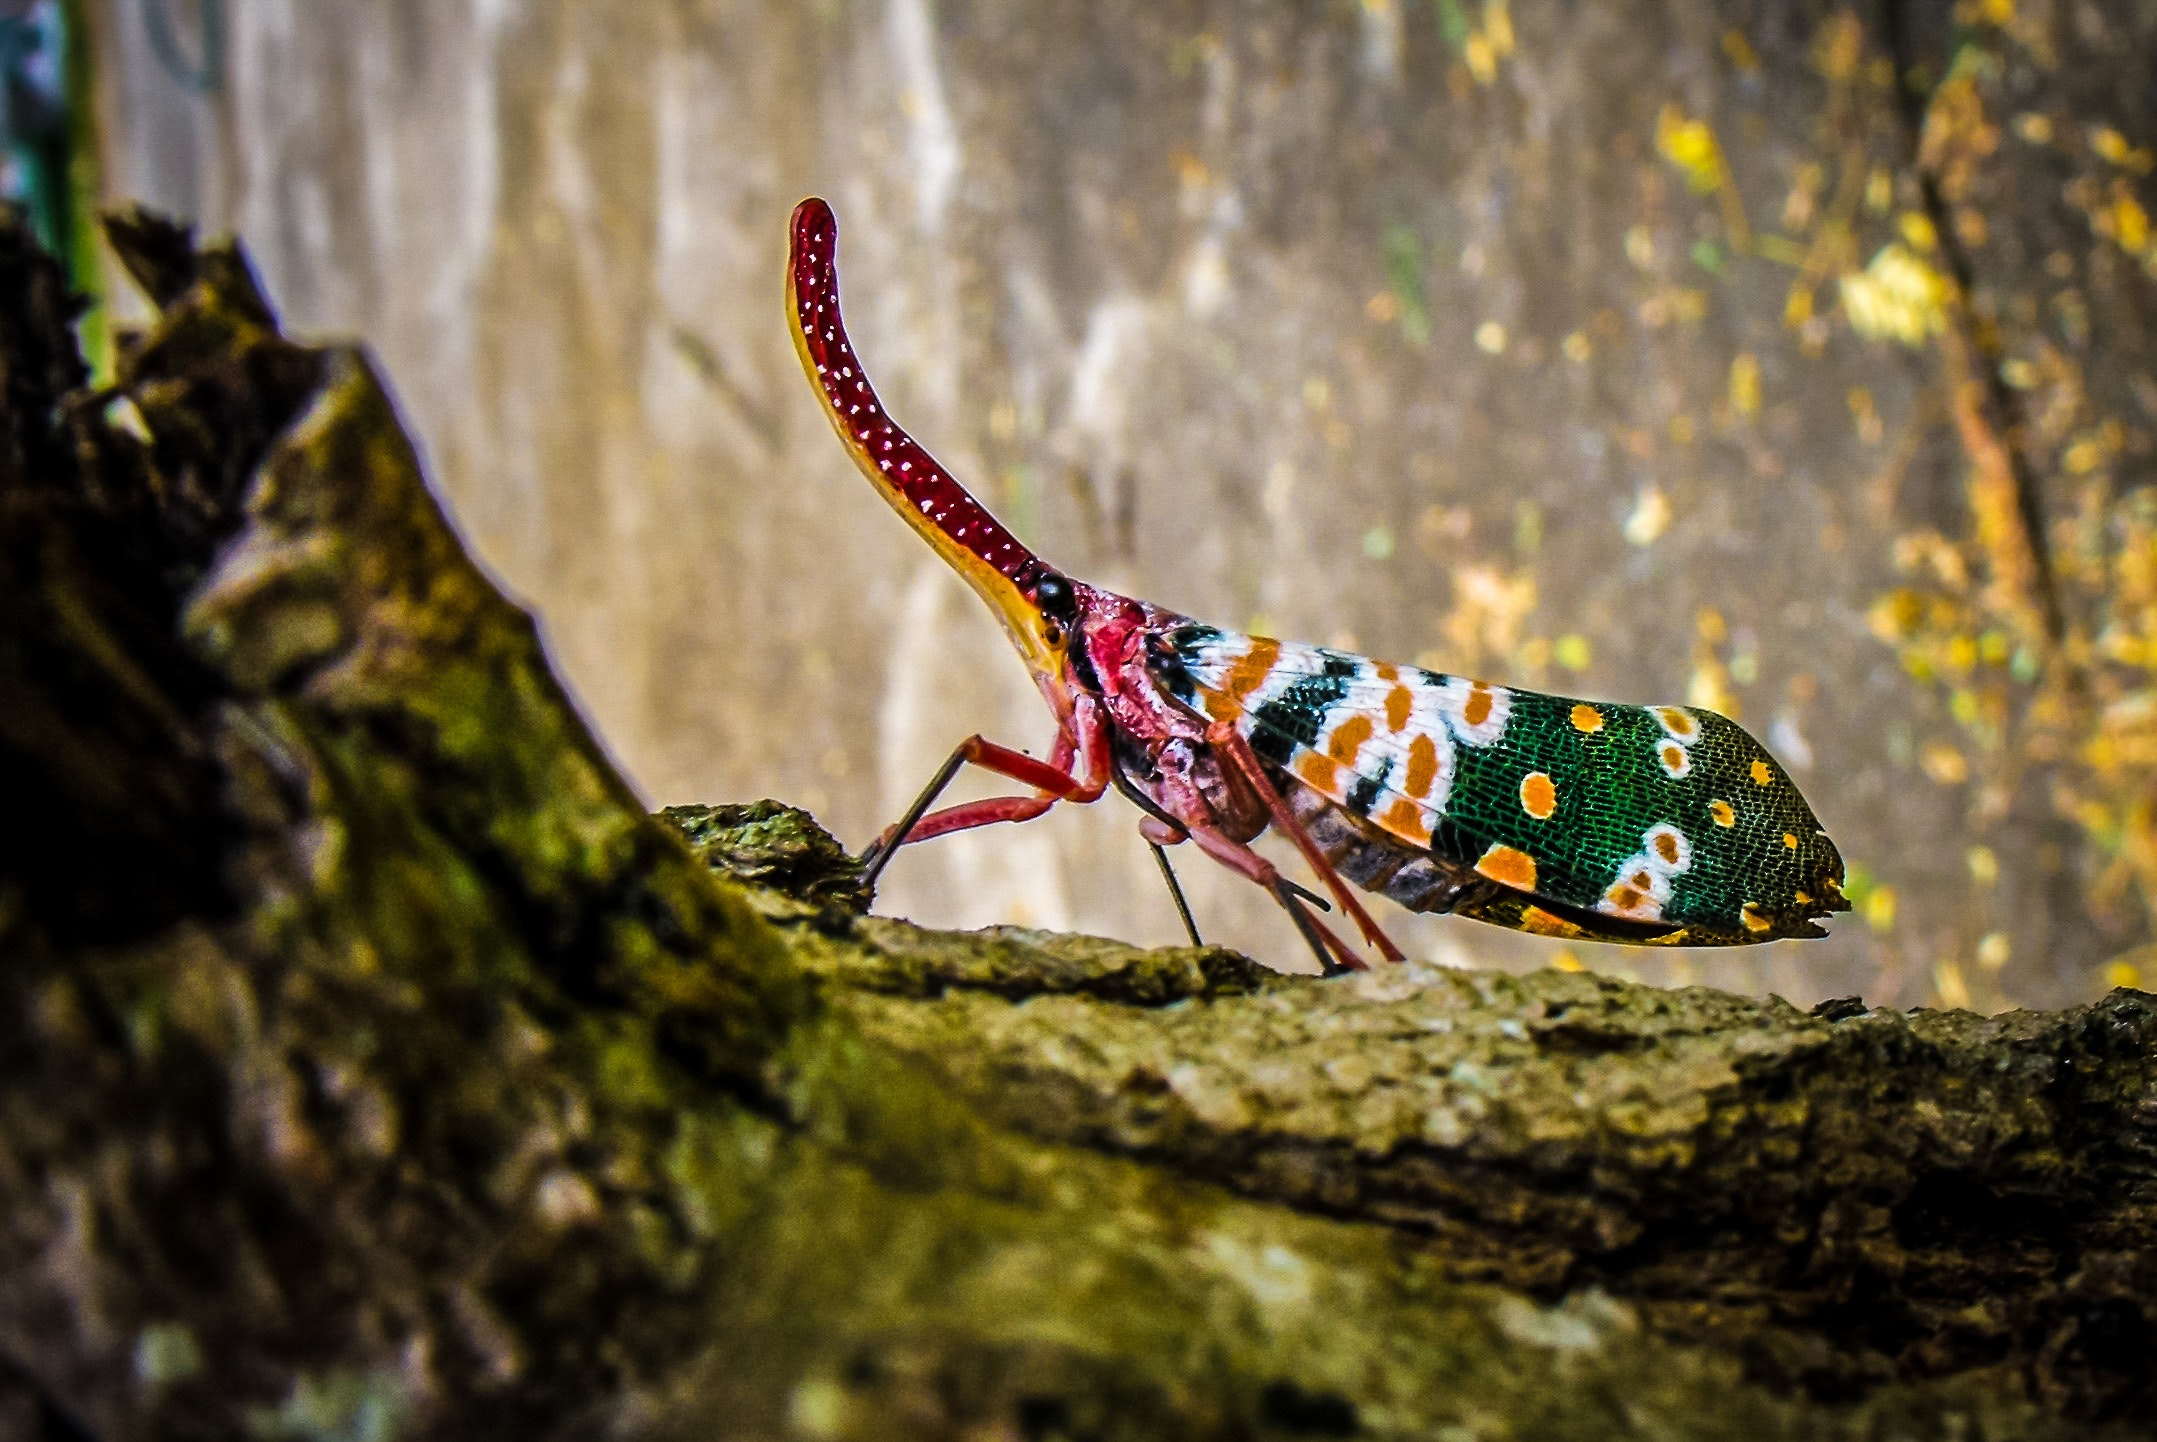 Green Yellow and White Insect on Green Tree Trunk, Animal, Colorful, Colourful, Fauna, HQ Photo